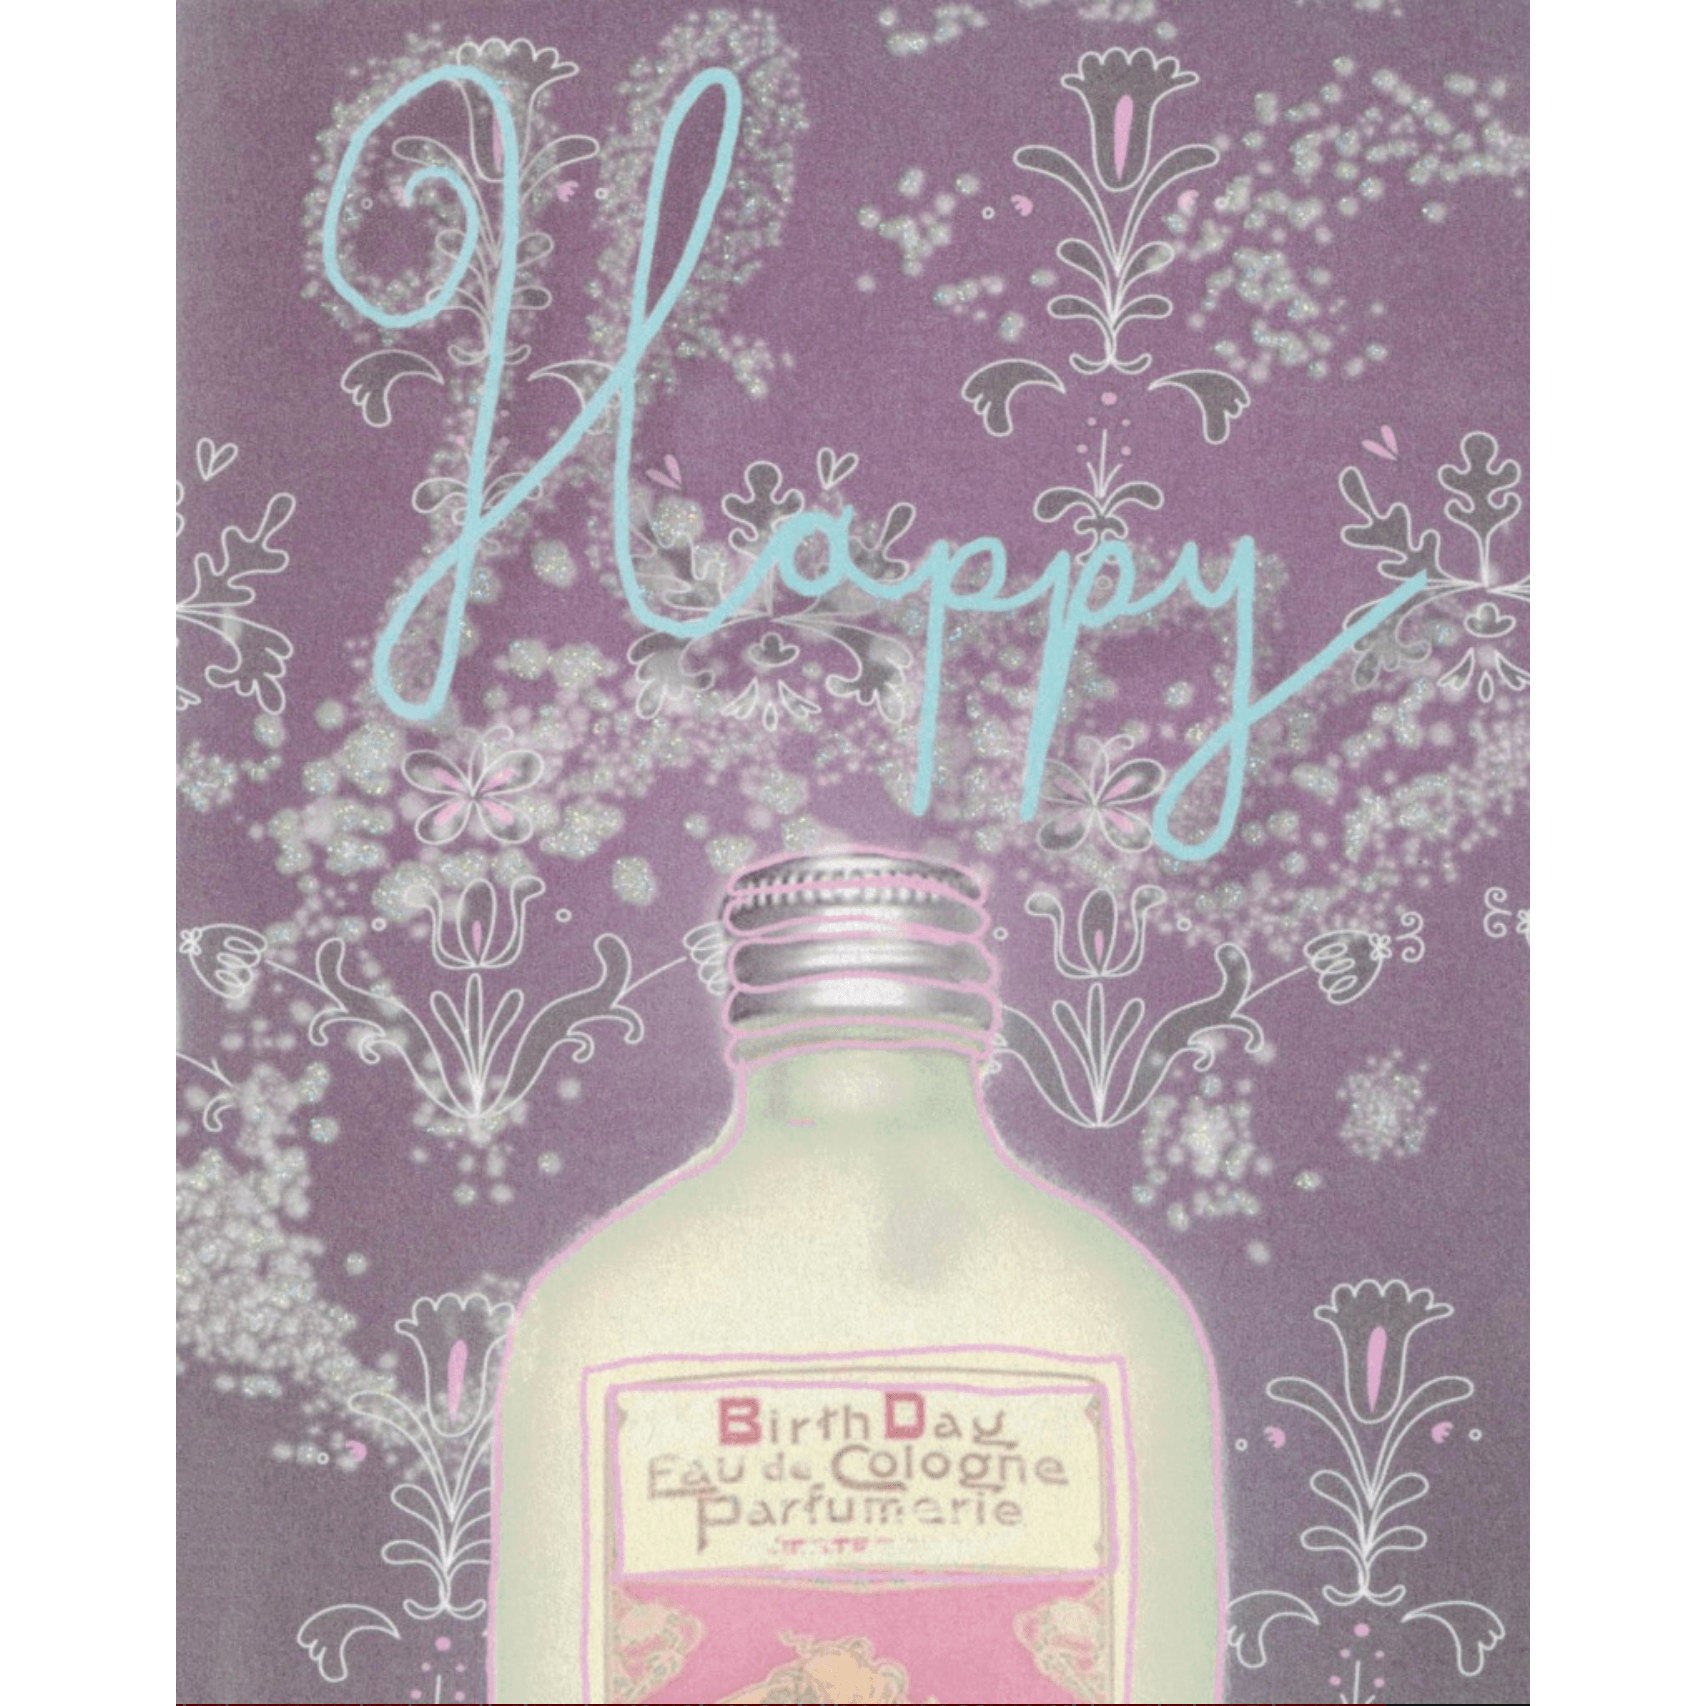 'Happy Birthday' Greeting Card Hand-Illustrated with Vintage Graphics and Glitter - Lady of the Lake